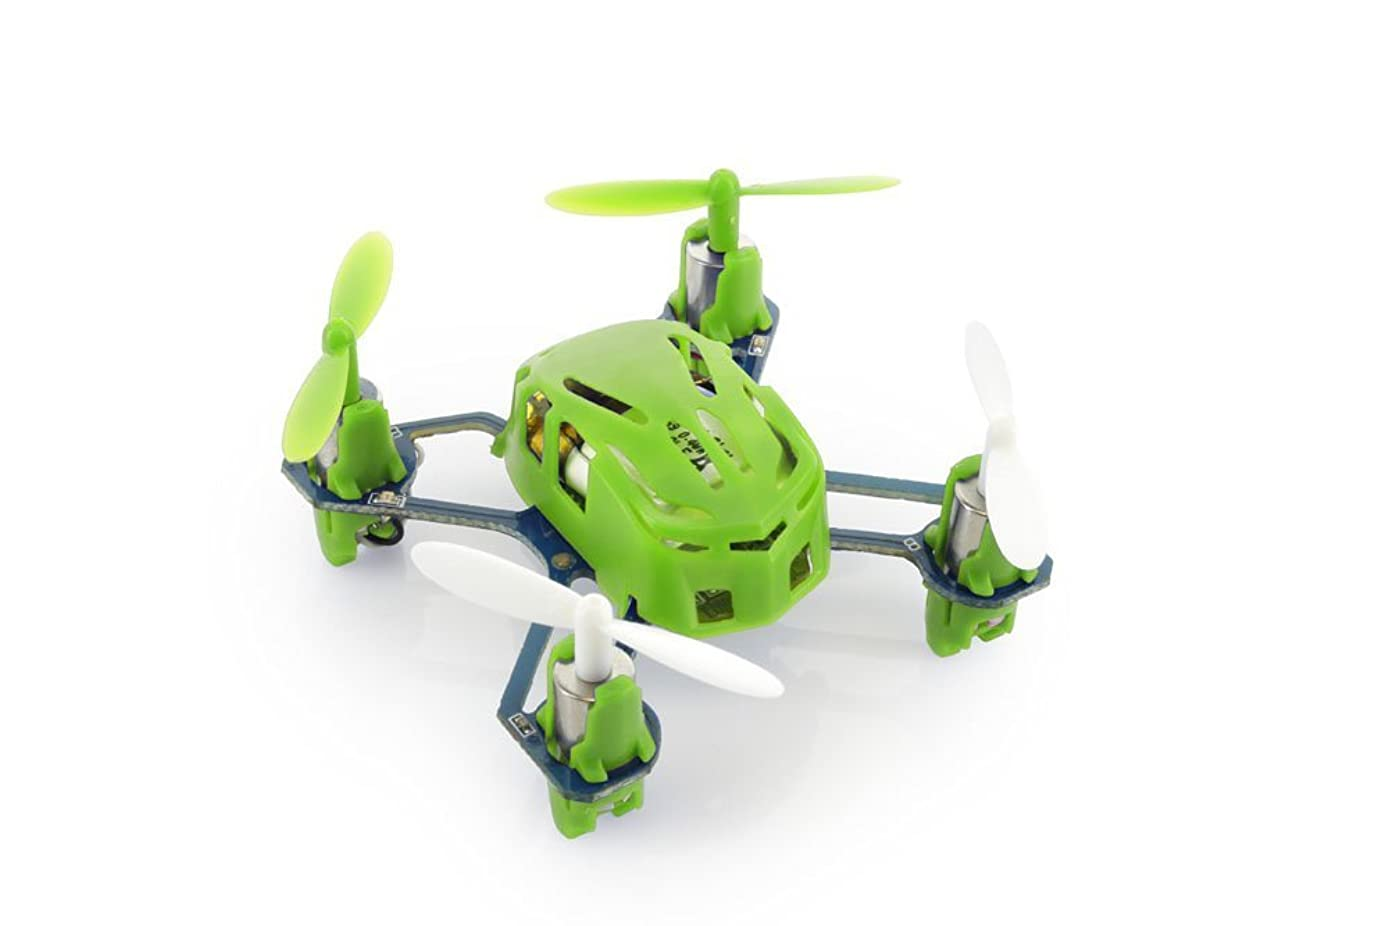 HUBSAN H111 Nano Q4 4-Channel 6 Axis Gyro Mini RC Quadcopter 2.4Ghz Radio System Mode 2 RTF- Carton Case Green